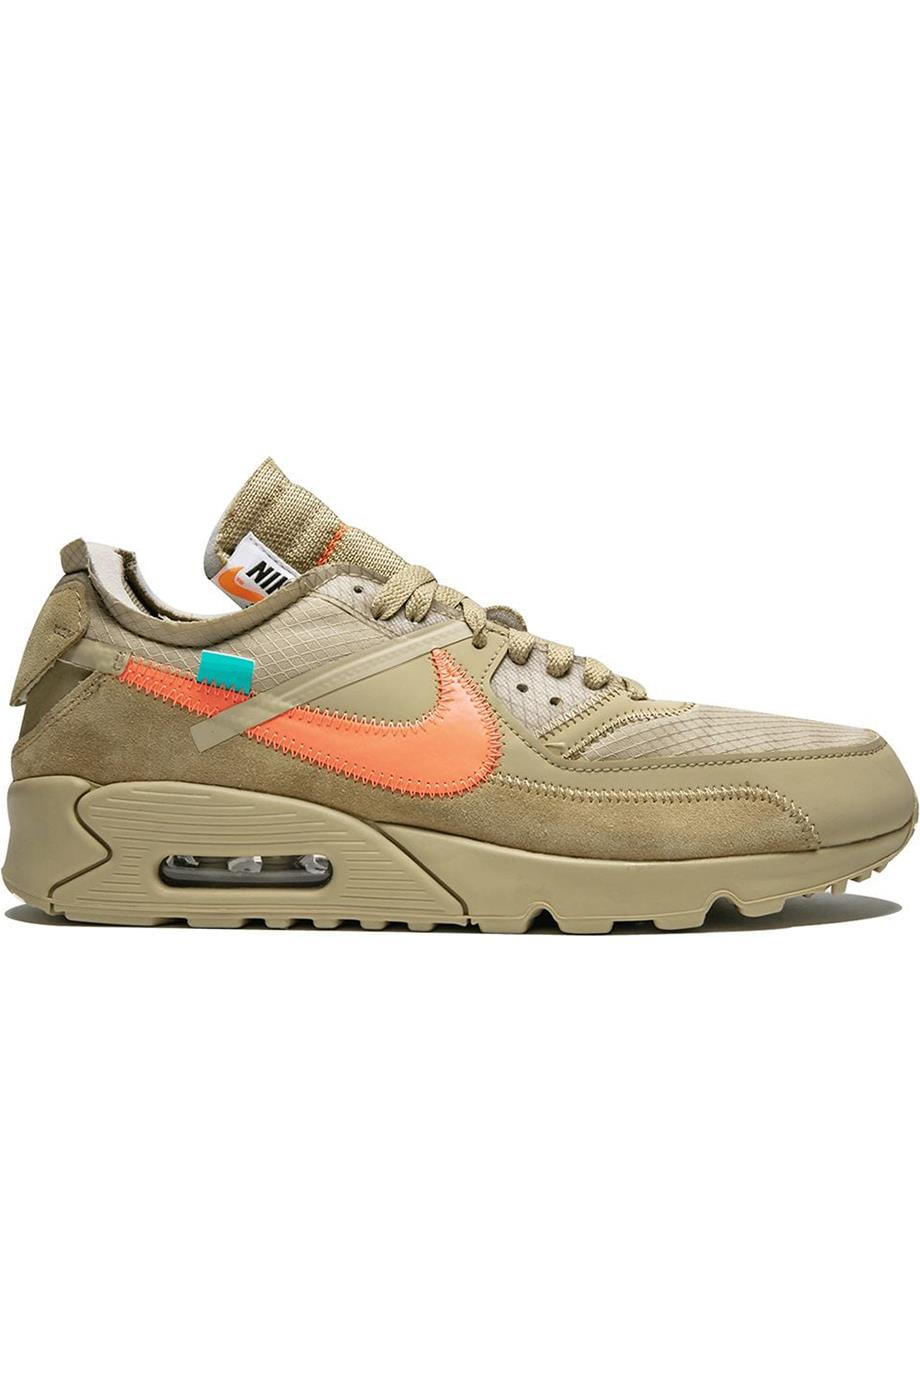 NIKE OFF-WHITE C/O ABLOH THE 1OTH AIR MAX 90 SNEAKERS EU 47.5 UK 12 US 13